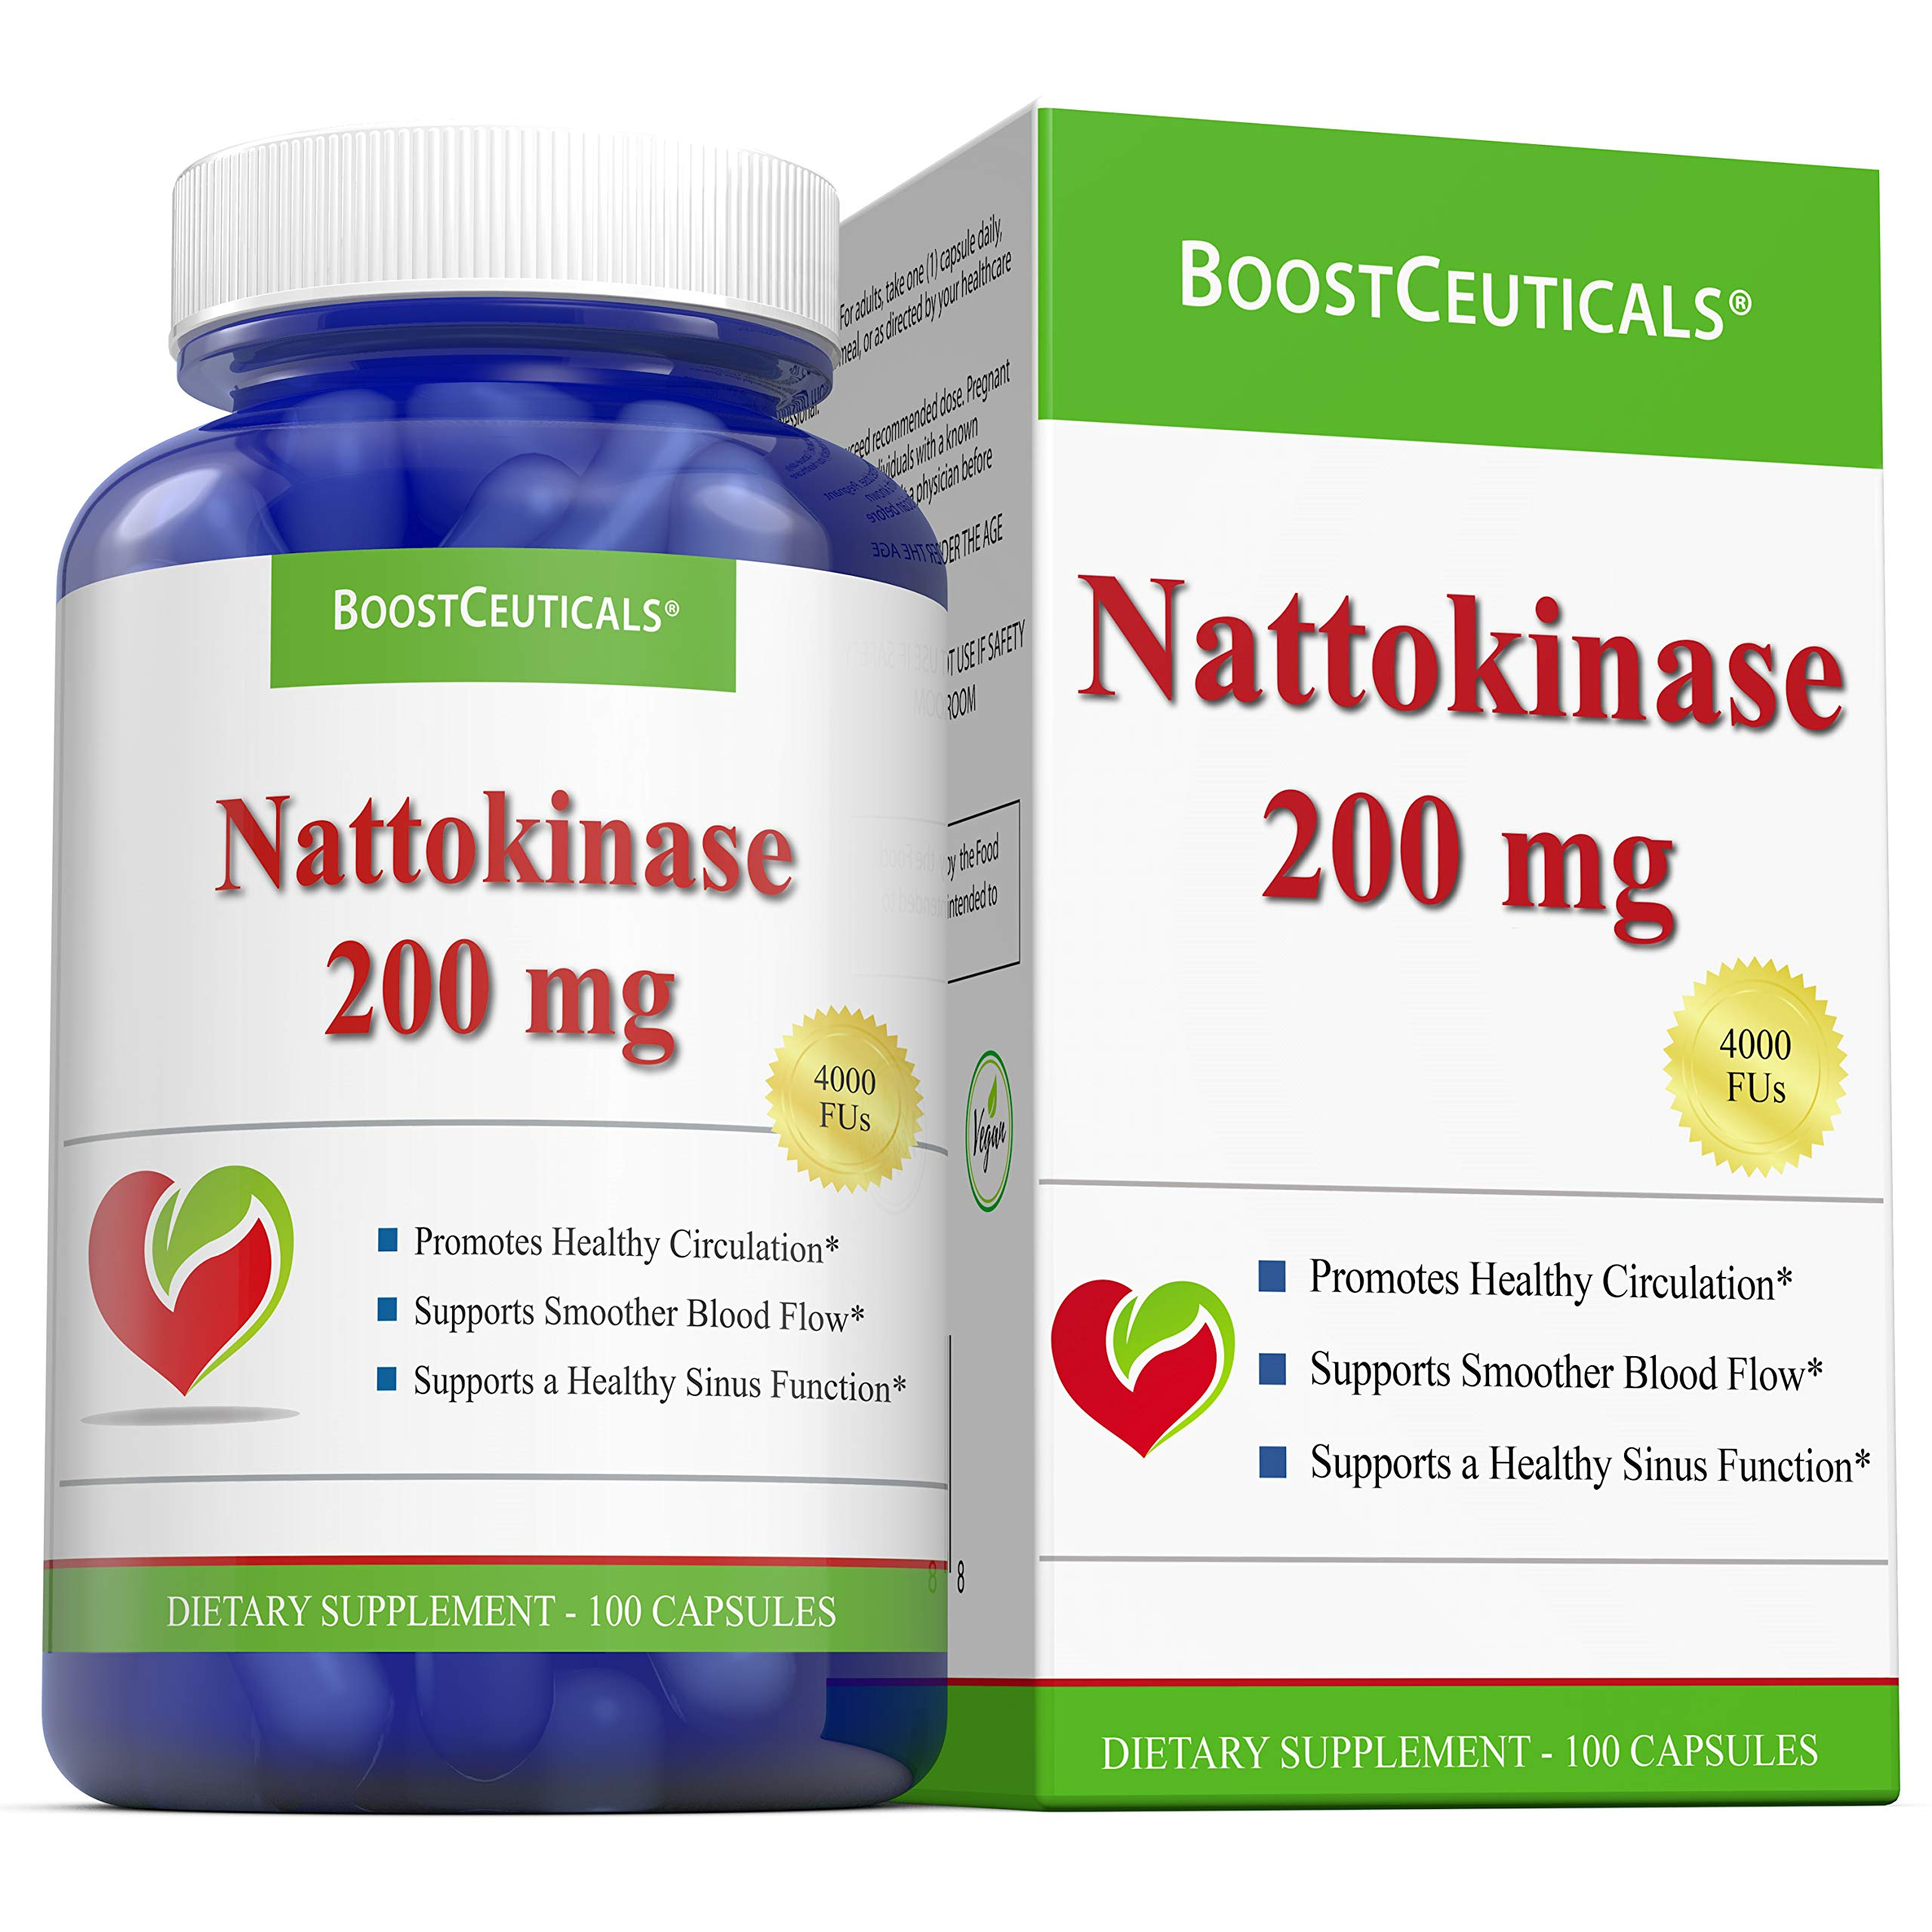 BoostCeuticals Nattokinase 100 200 mg Vegan No Stearates No Additives 4000FU Supplement – Non GMO Gluten Free Pure Natural Blood Thinner (Over 3 Months Supply)